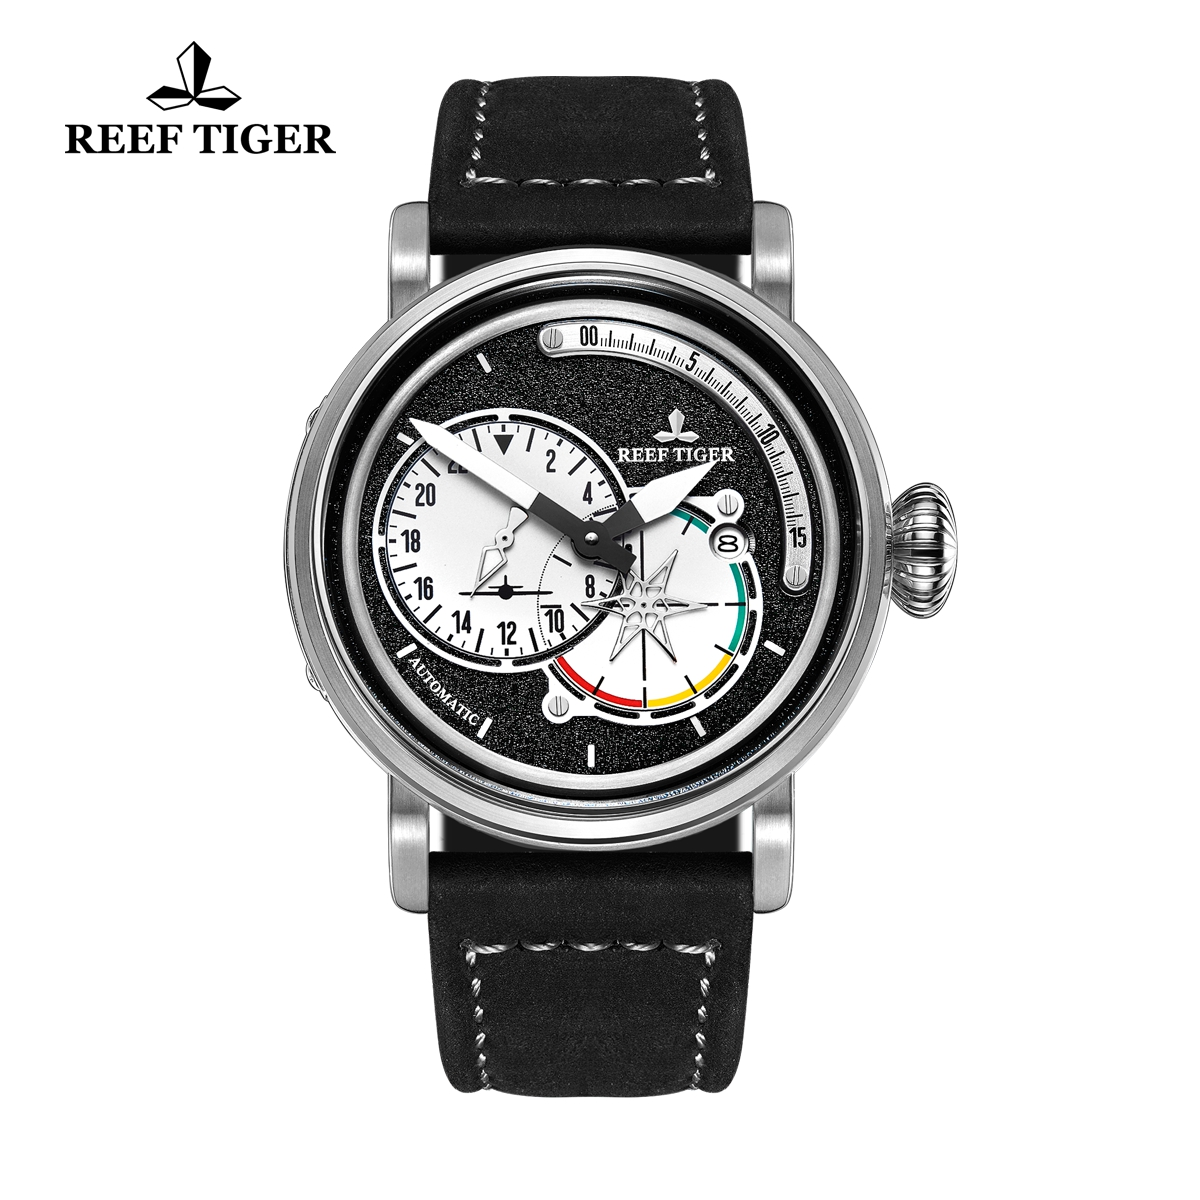 Reef Tiger Pilot Fashion Mens Watches Steel Case Black Dial Leather Strap Watches RGA3019-YBB